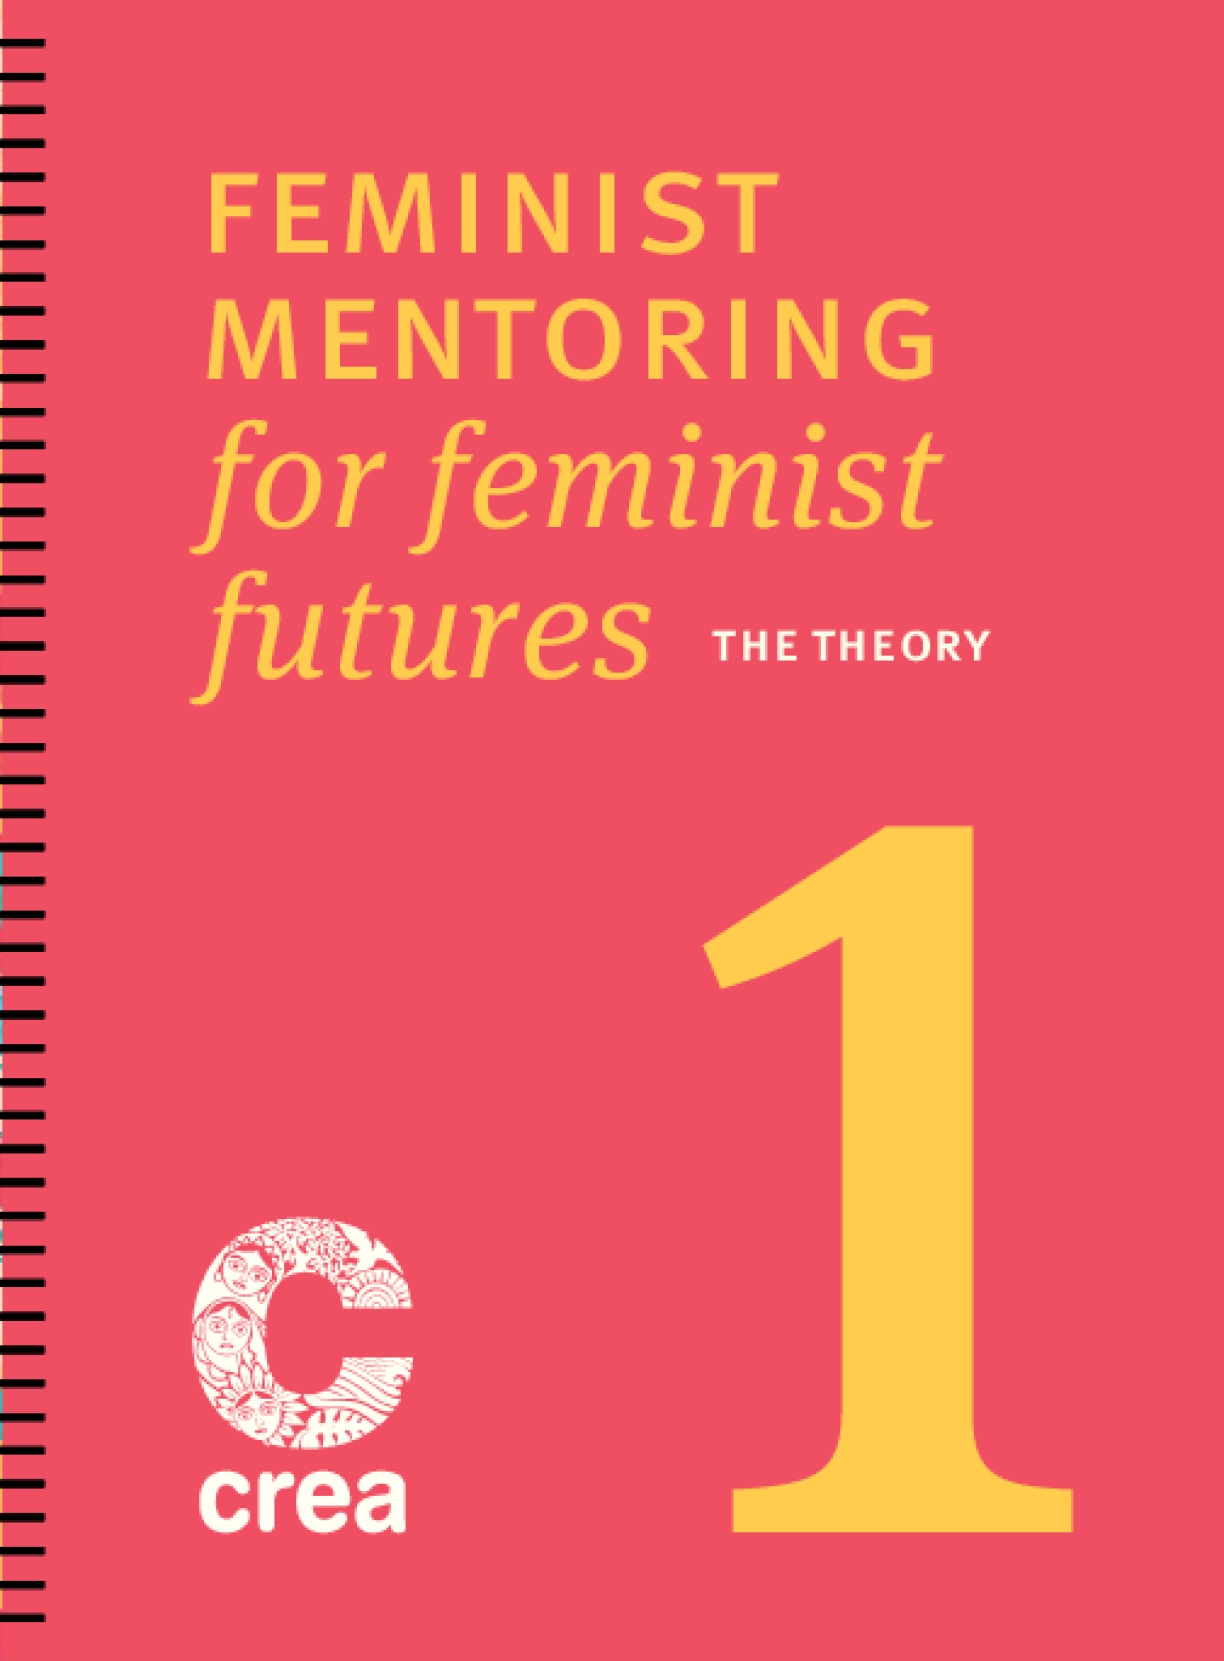 Feminist Mentoring For Feminist Futures – Part 1: The Theory